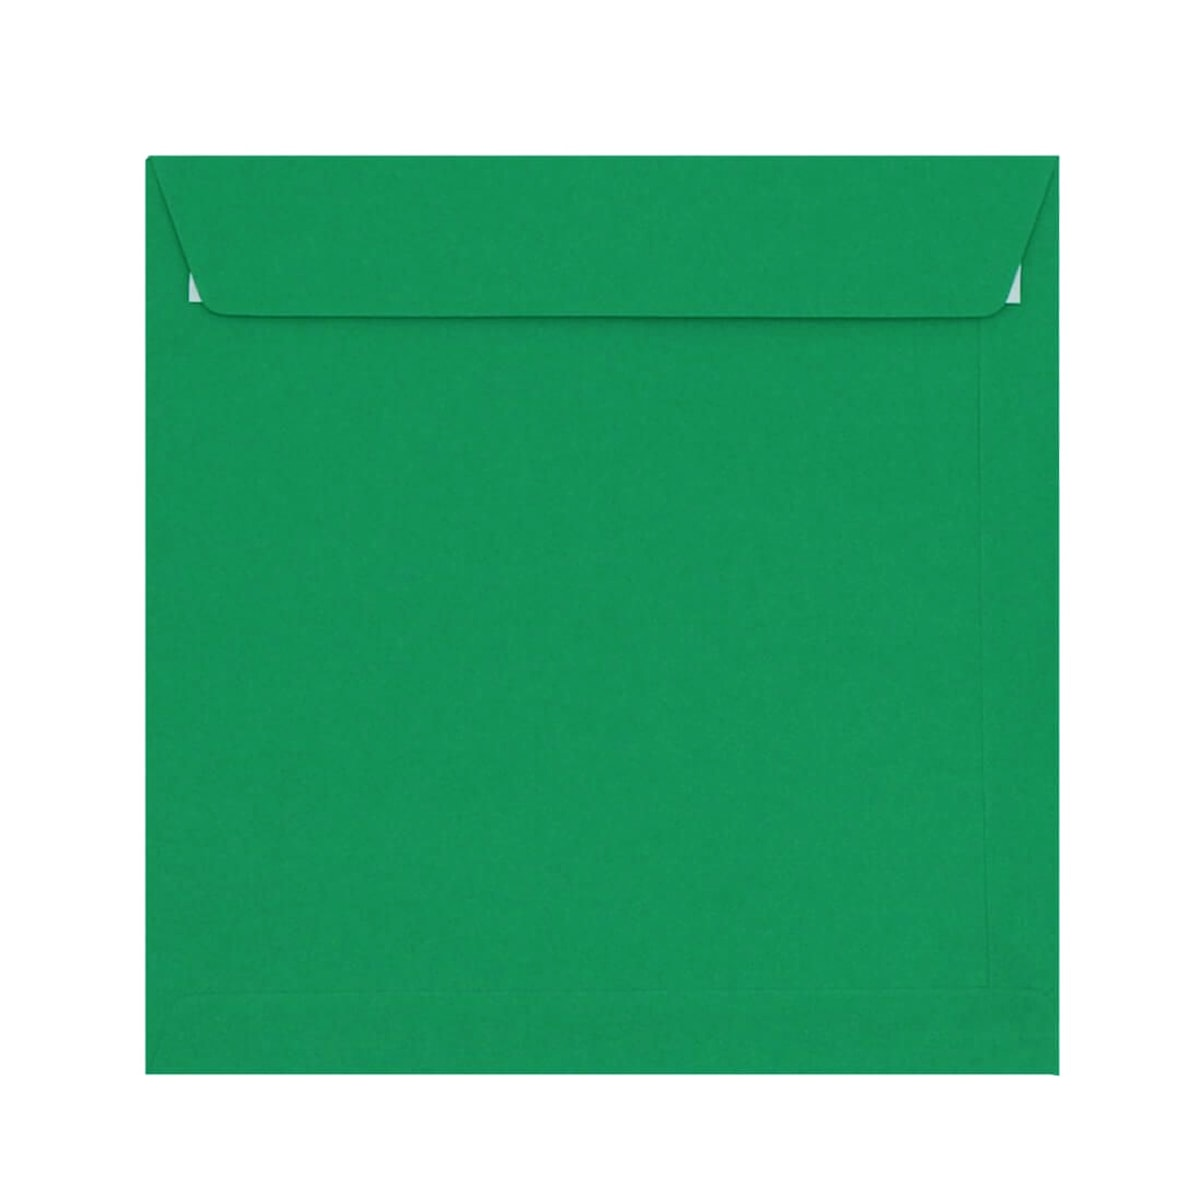 DARK GREEN 220mm SQUARE PEEL & SEAL ENVELOPES